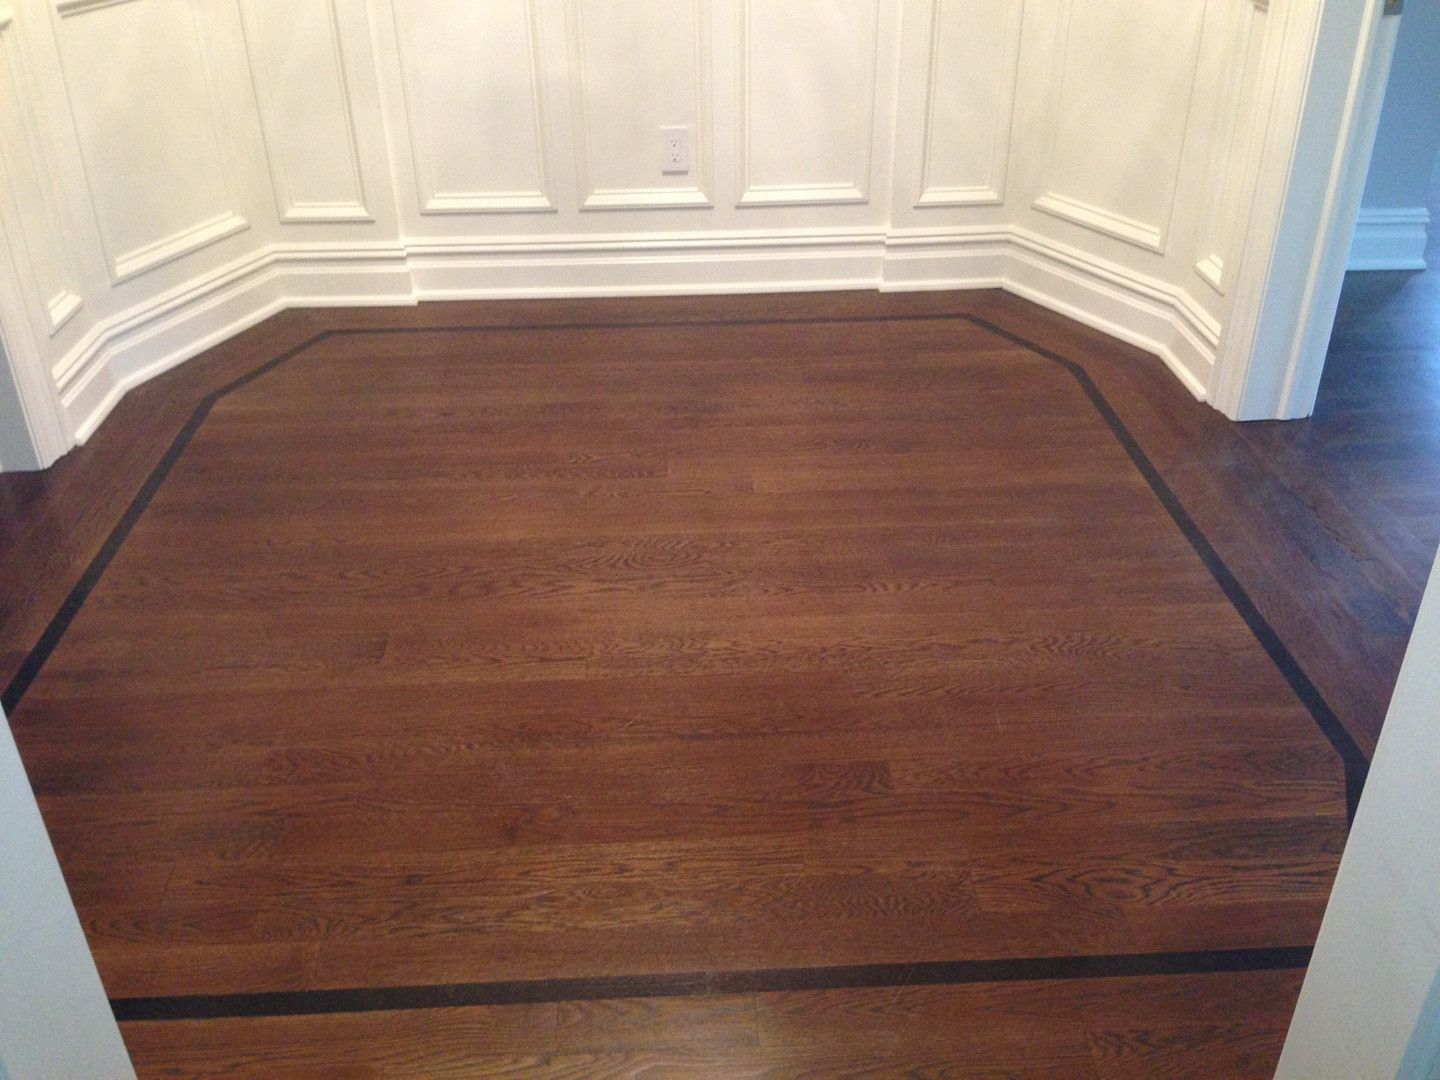 Hardwood Flooring Ct Installation Of J R Hardwood Floors L L C Home Intended for before Pic